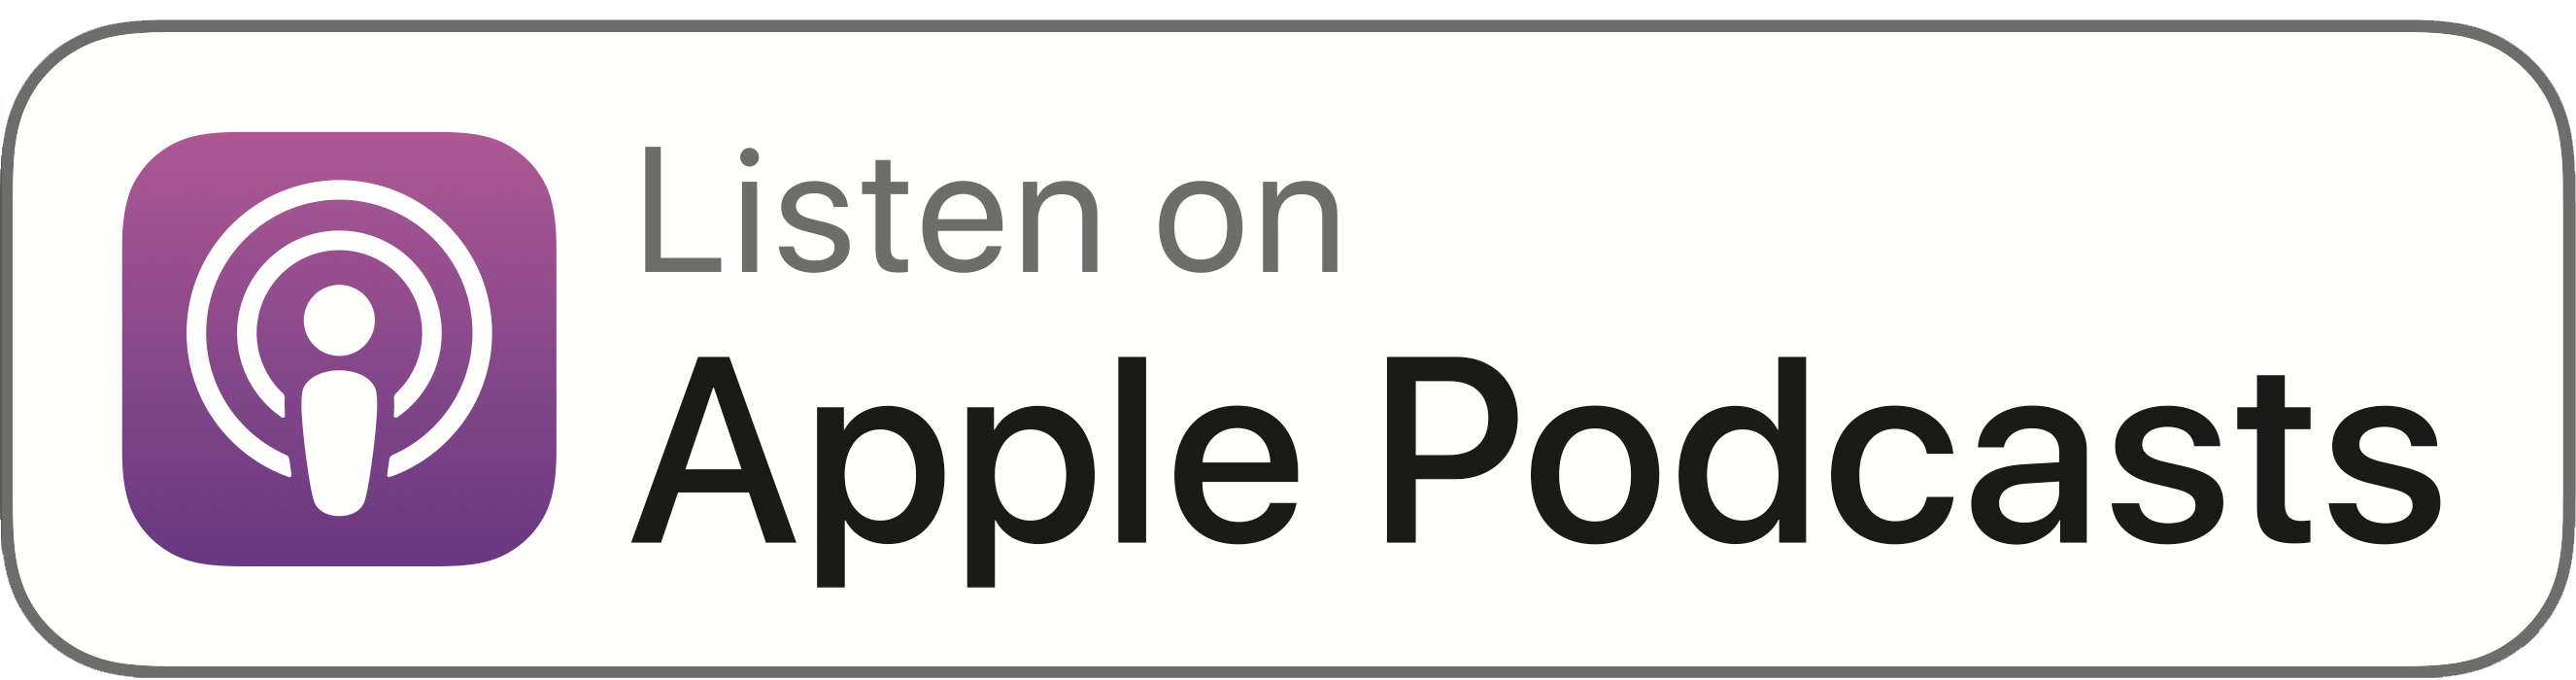 Apple Podcast PNG Transparent Apple Podcast.PNG Images. | PlusPNG